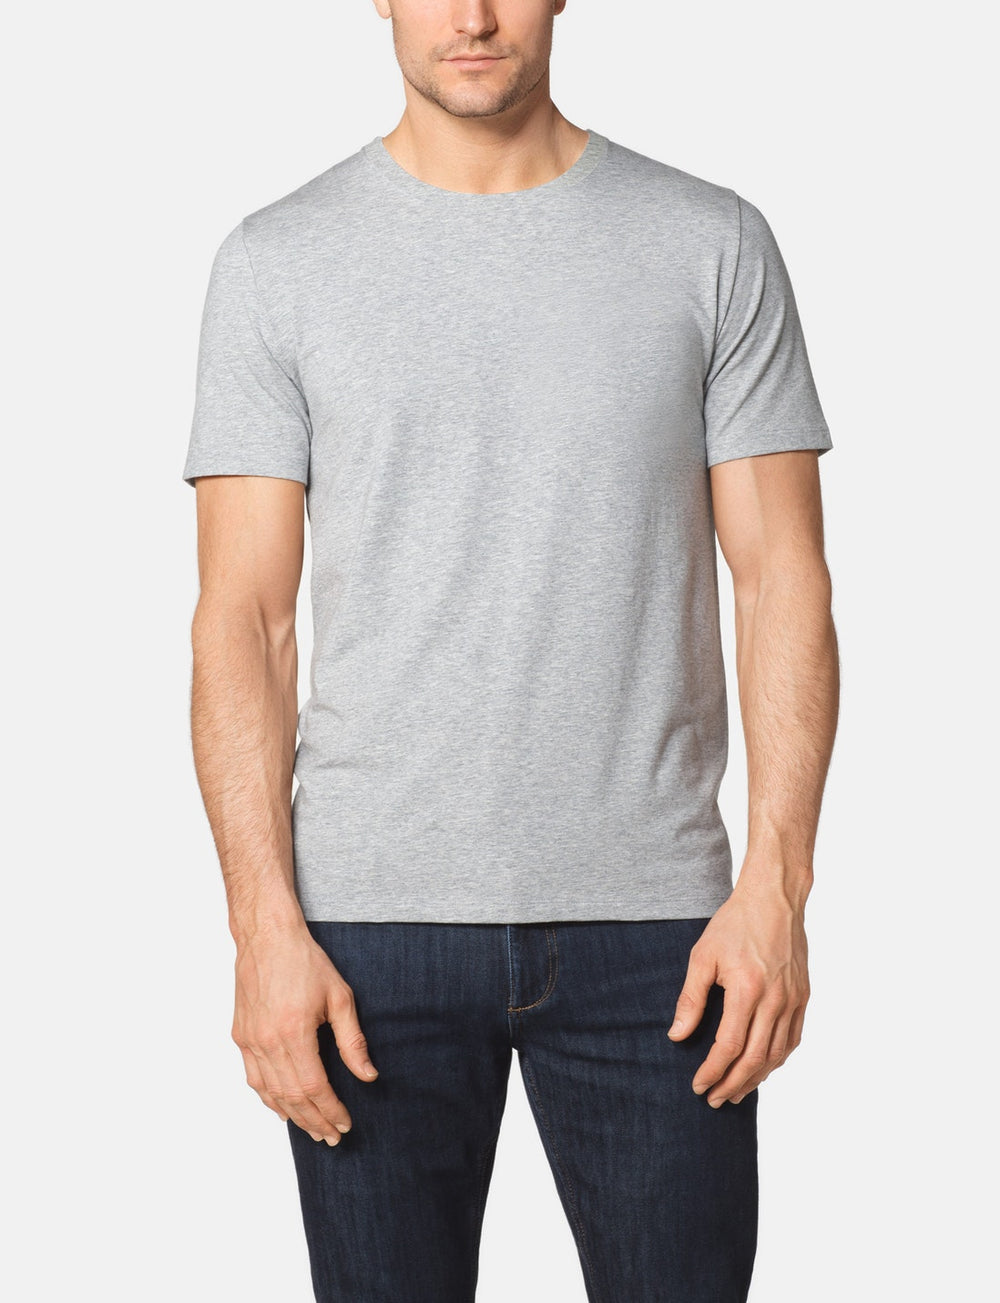 6b65bfd5f Second Skin Crew Neck Tee (Soft T-shirt)